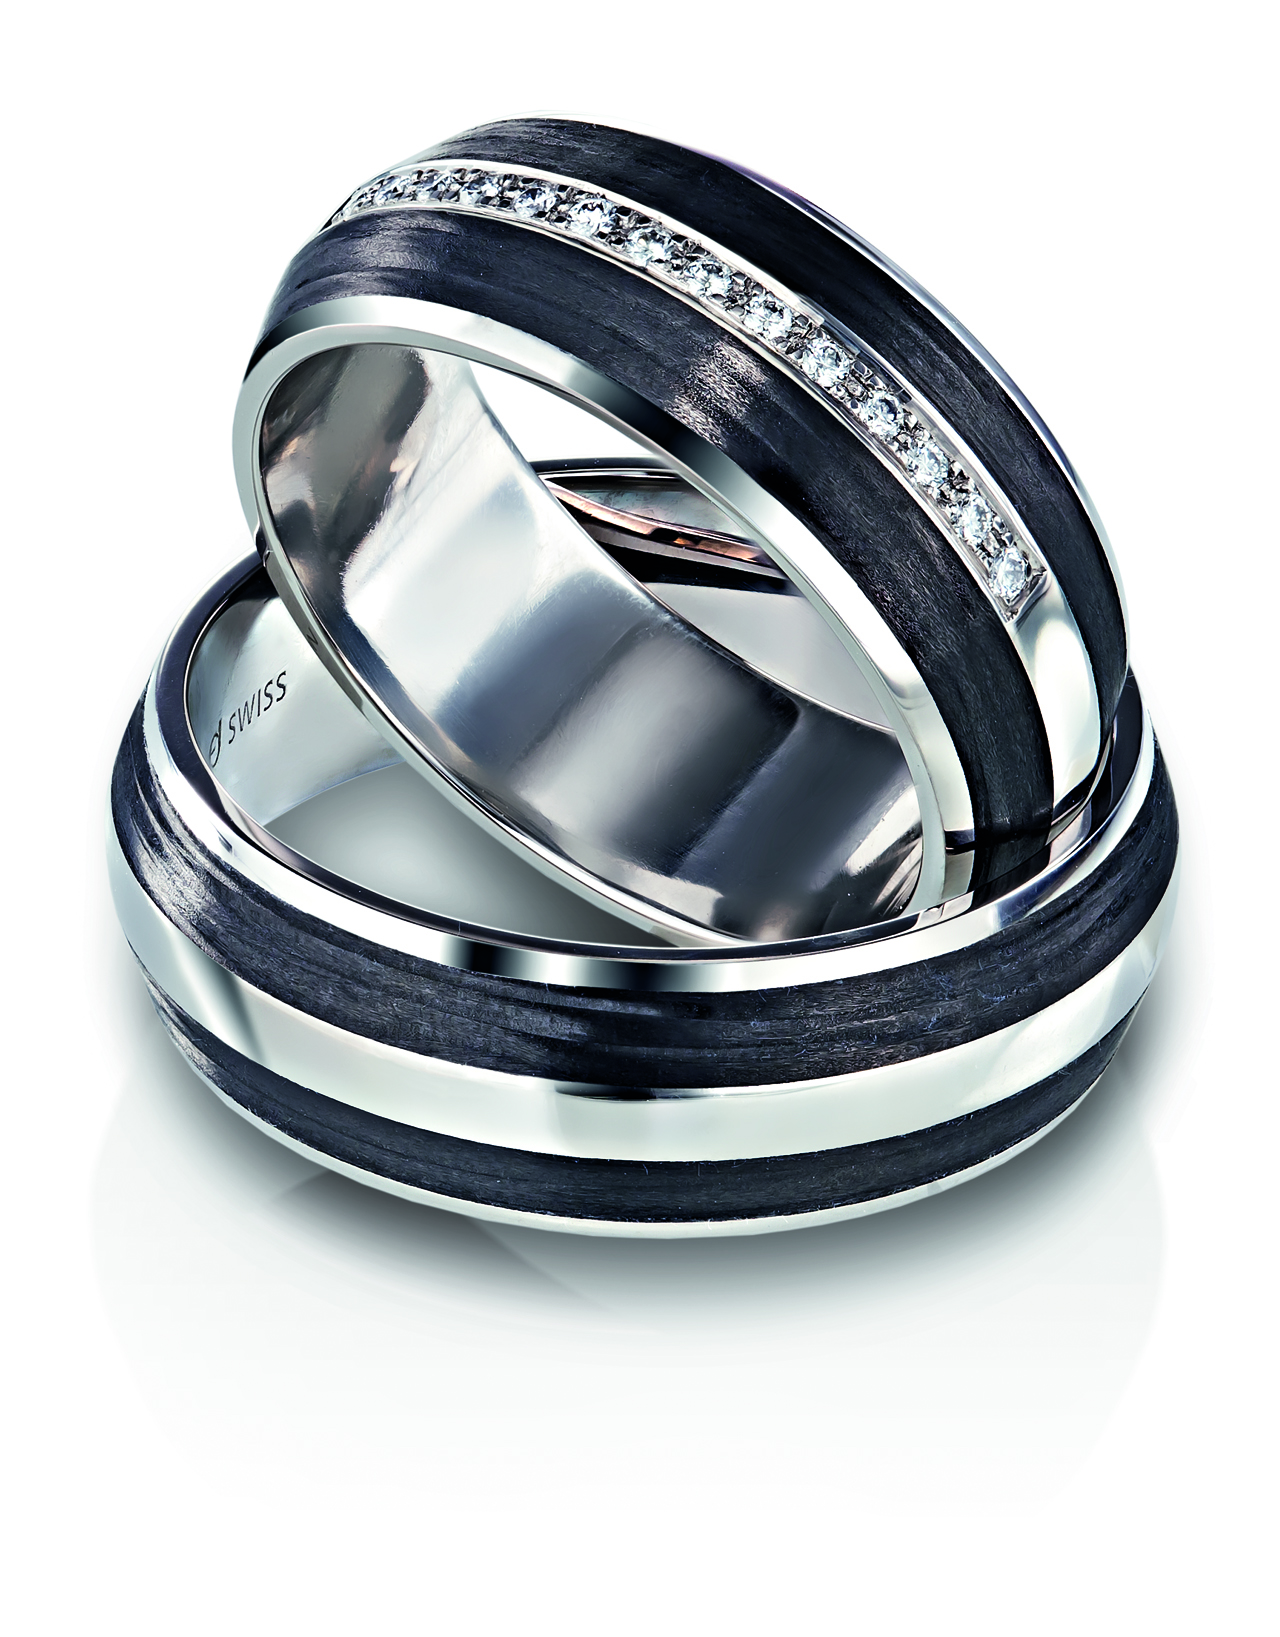 carbon wedding carbonfiber bands index all fiber rings ring